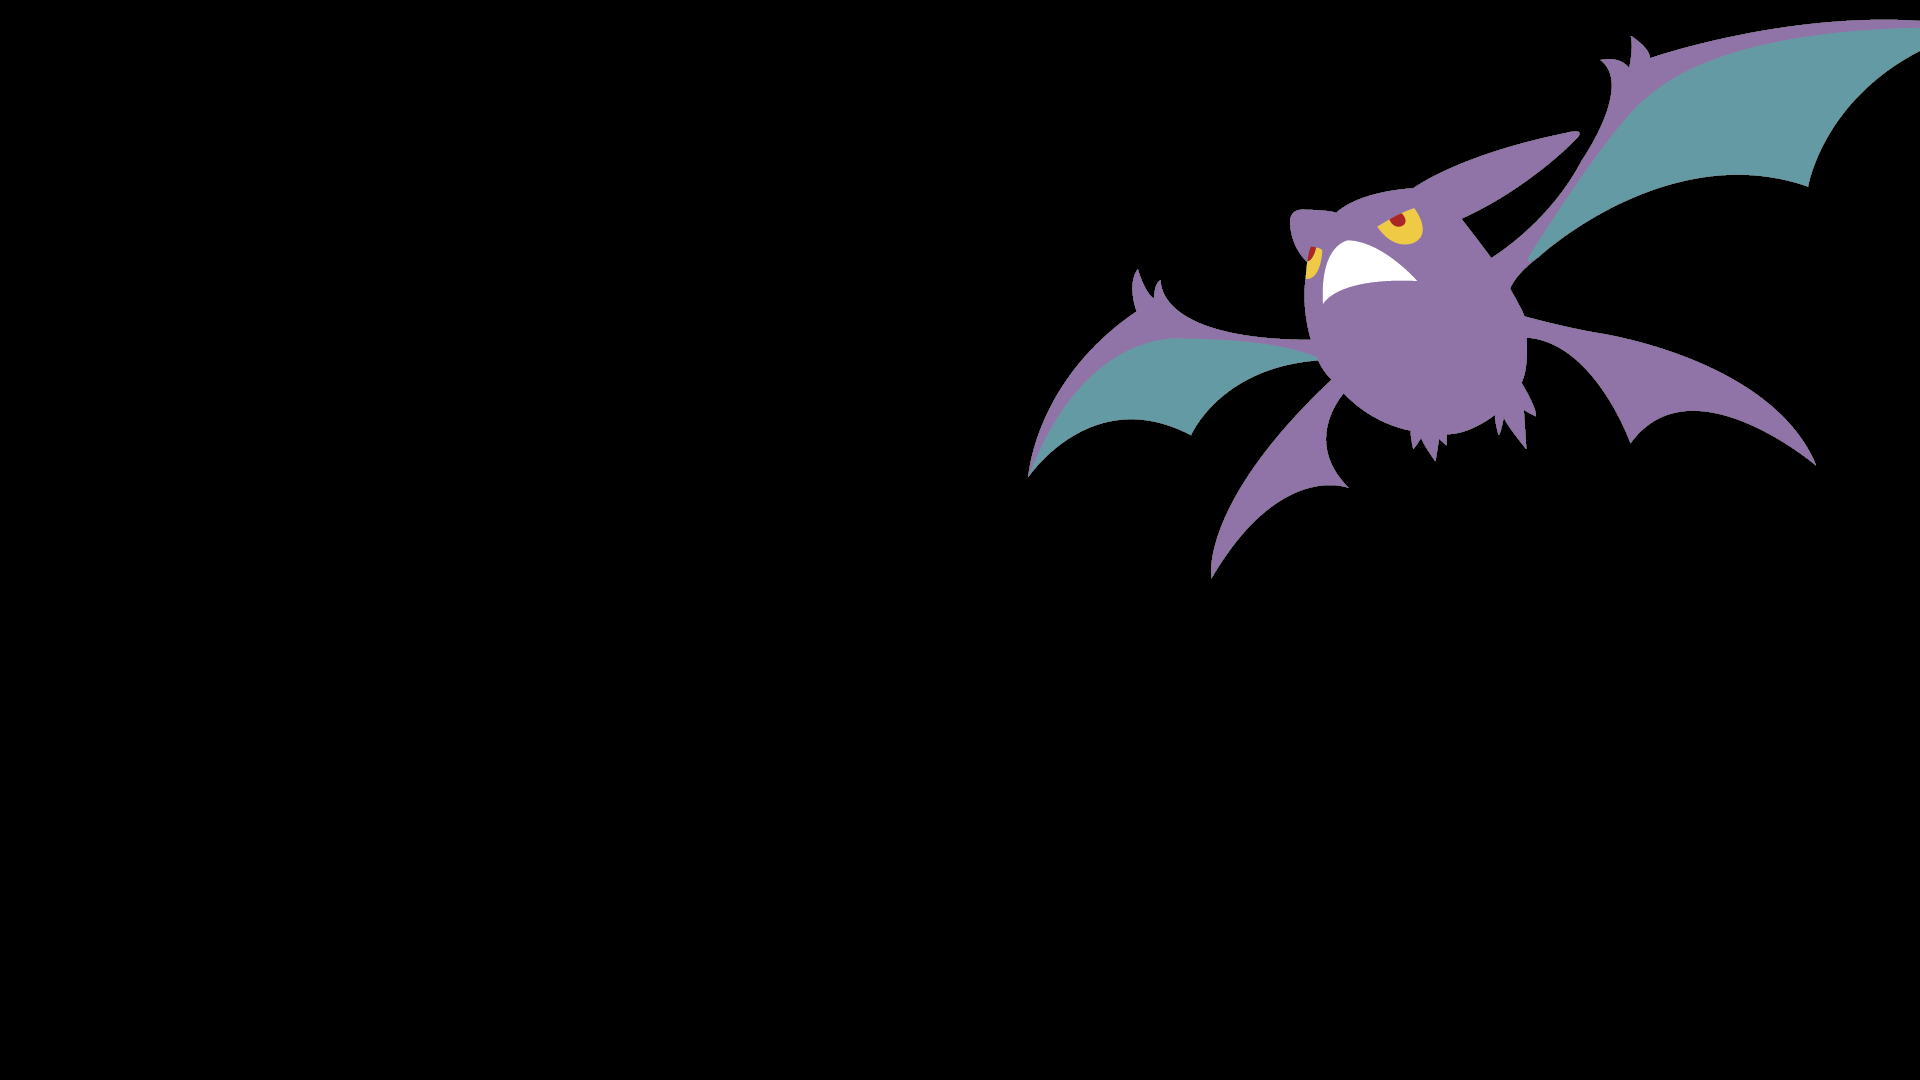 Crobat Wallpaper : pokemon